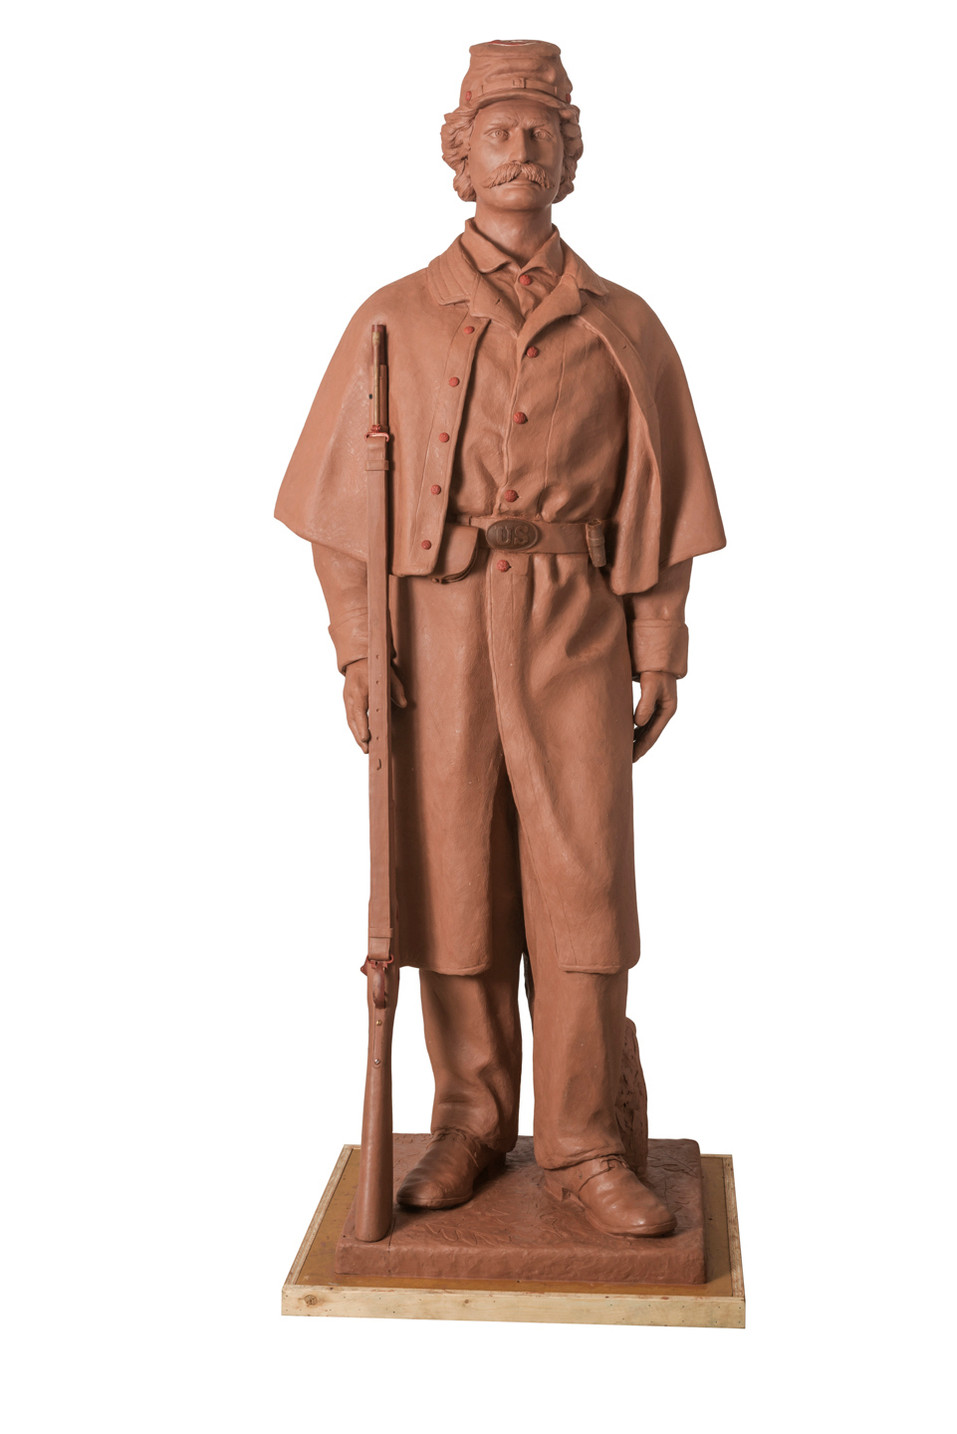 lifesize Civil War Soldier Rock Island Illinios dedication to be announced.